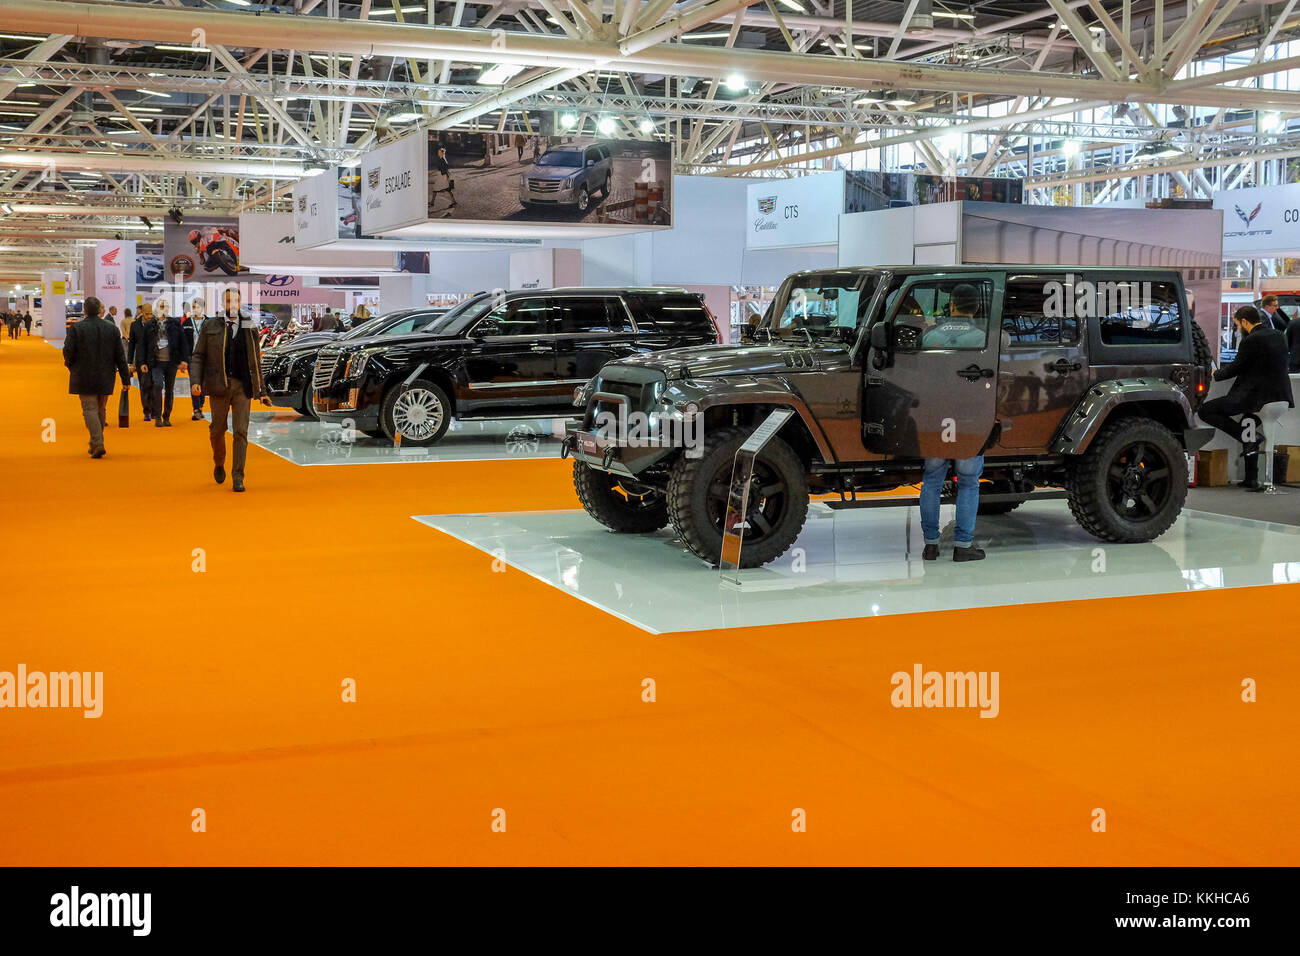 Bologna - Italy - DECEMBER 1: Today is seeing on the opening day of the Bologna Motorshow, The Bologna motor show - Stock Image